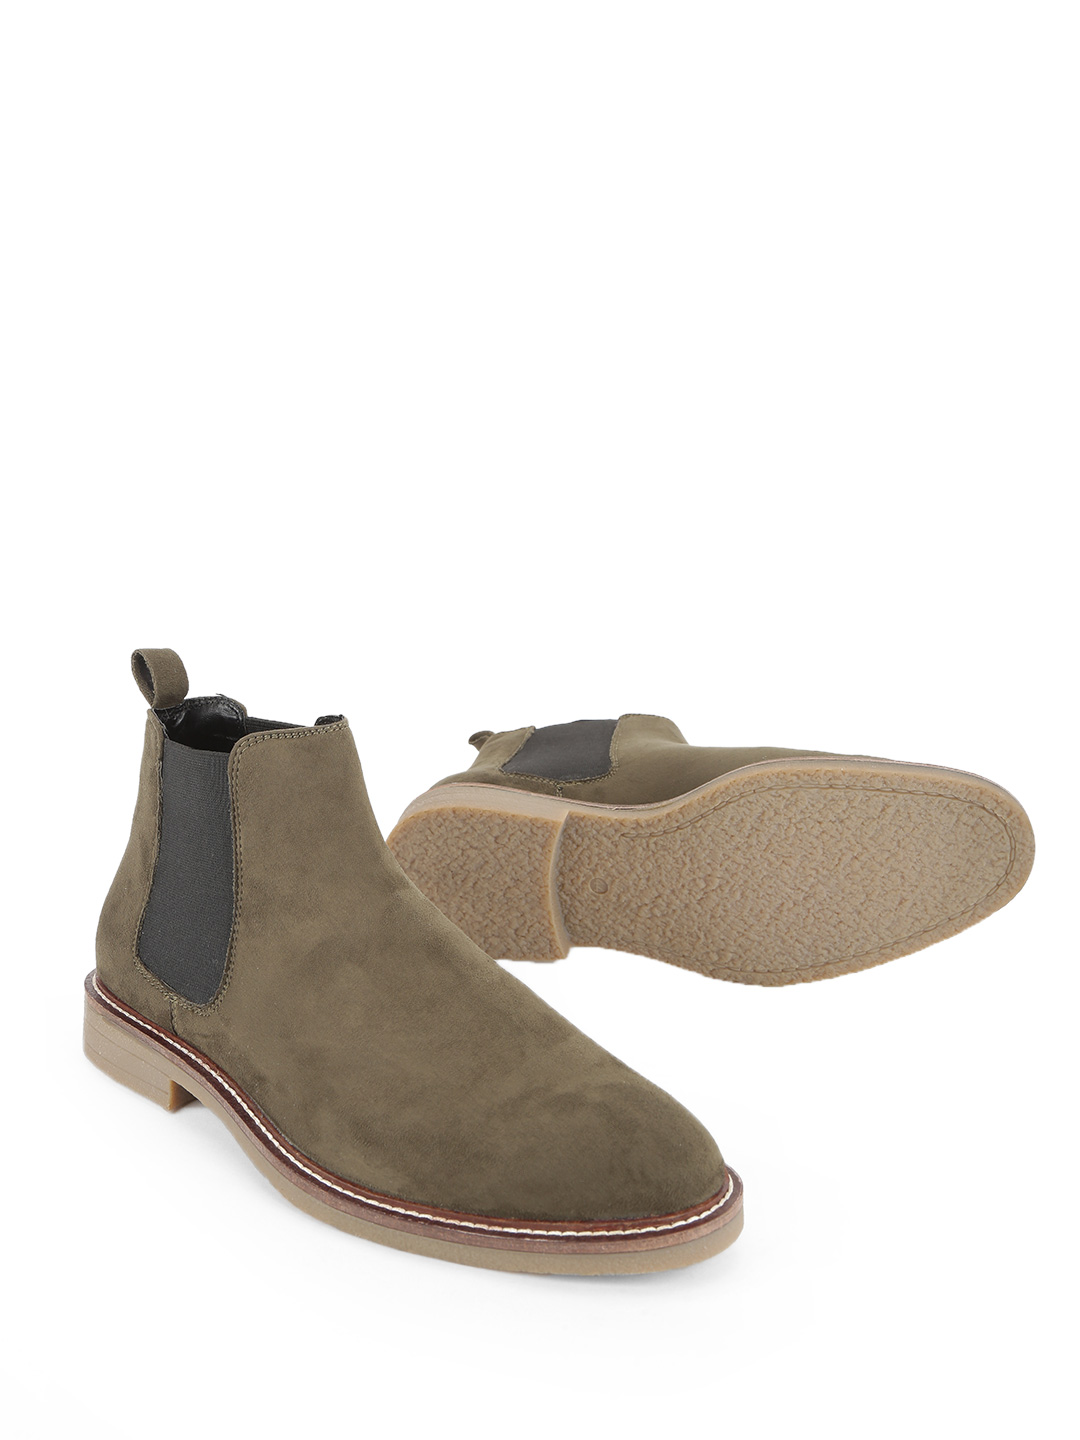 KOOVS Olive Crepe Sole Suede Chelsea Boots 1